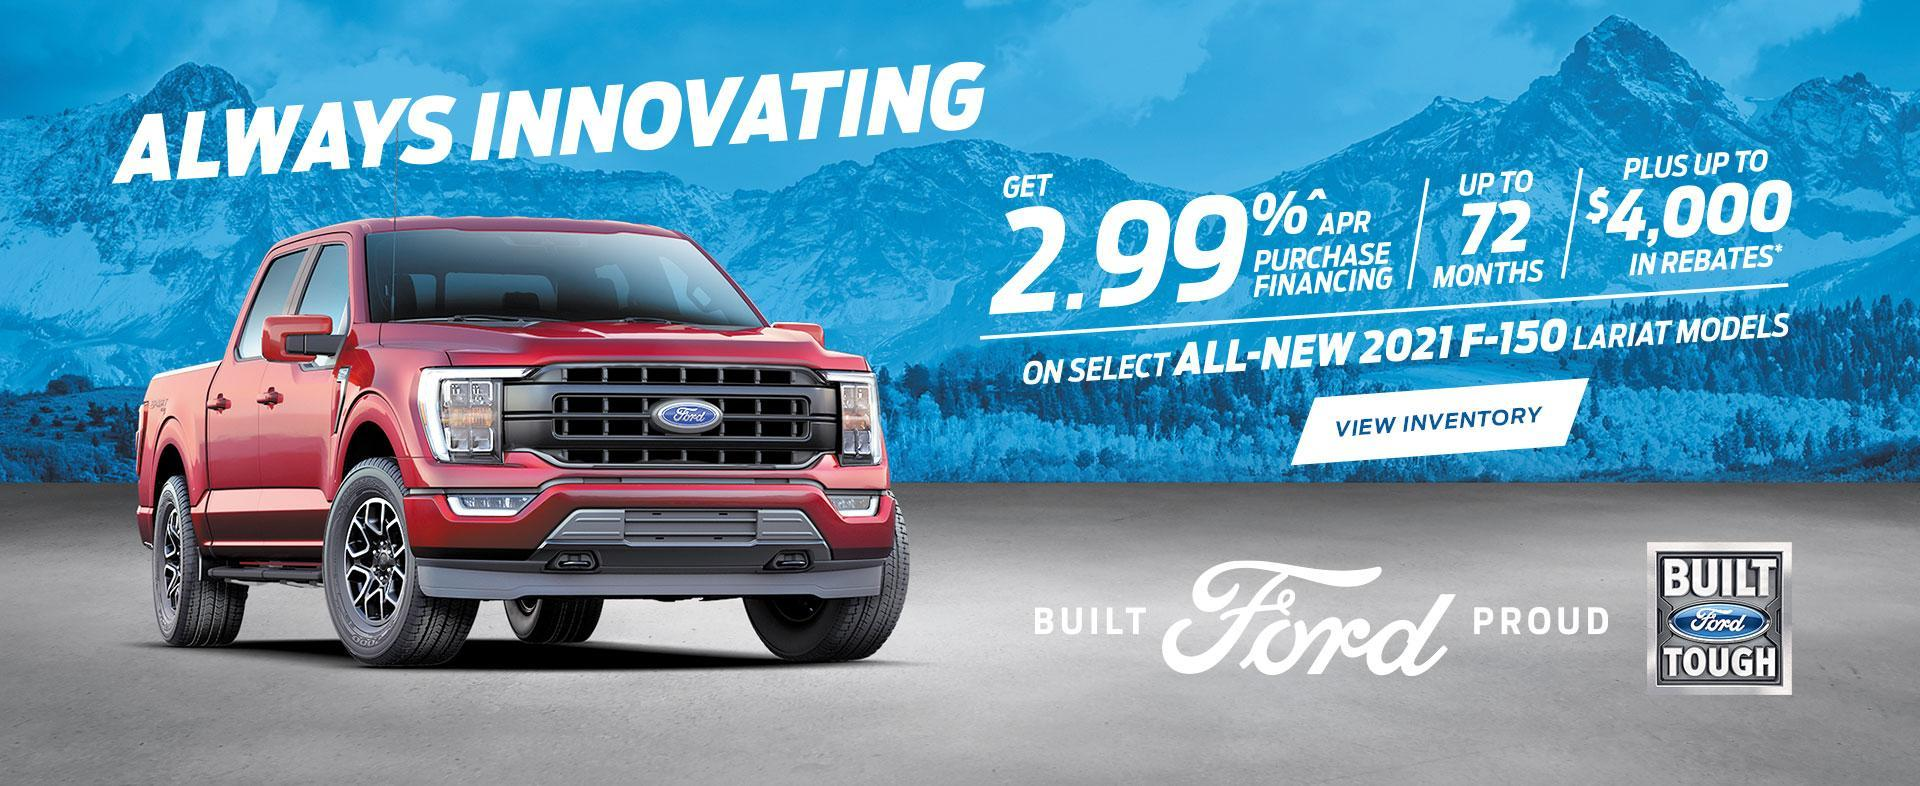 Shift Your Perspective | Ford F-150 | Ford of Canada